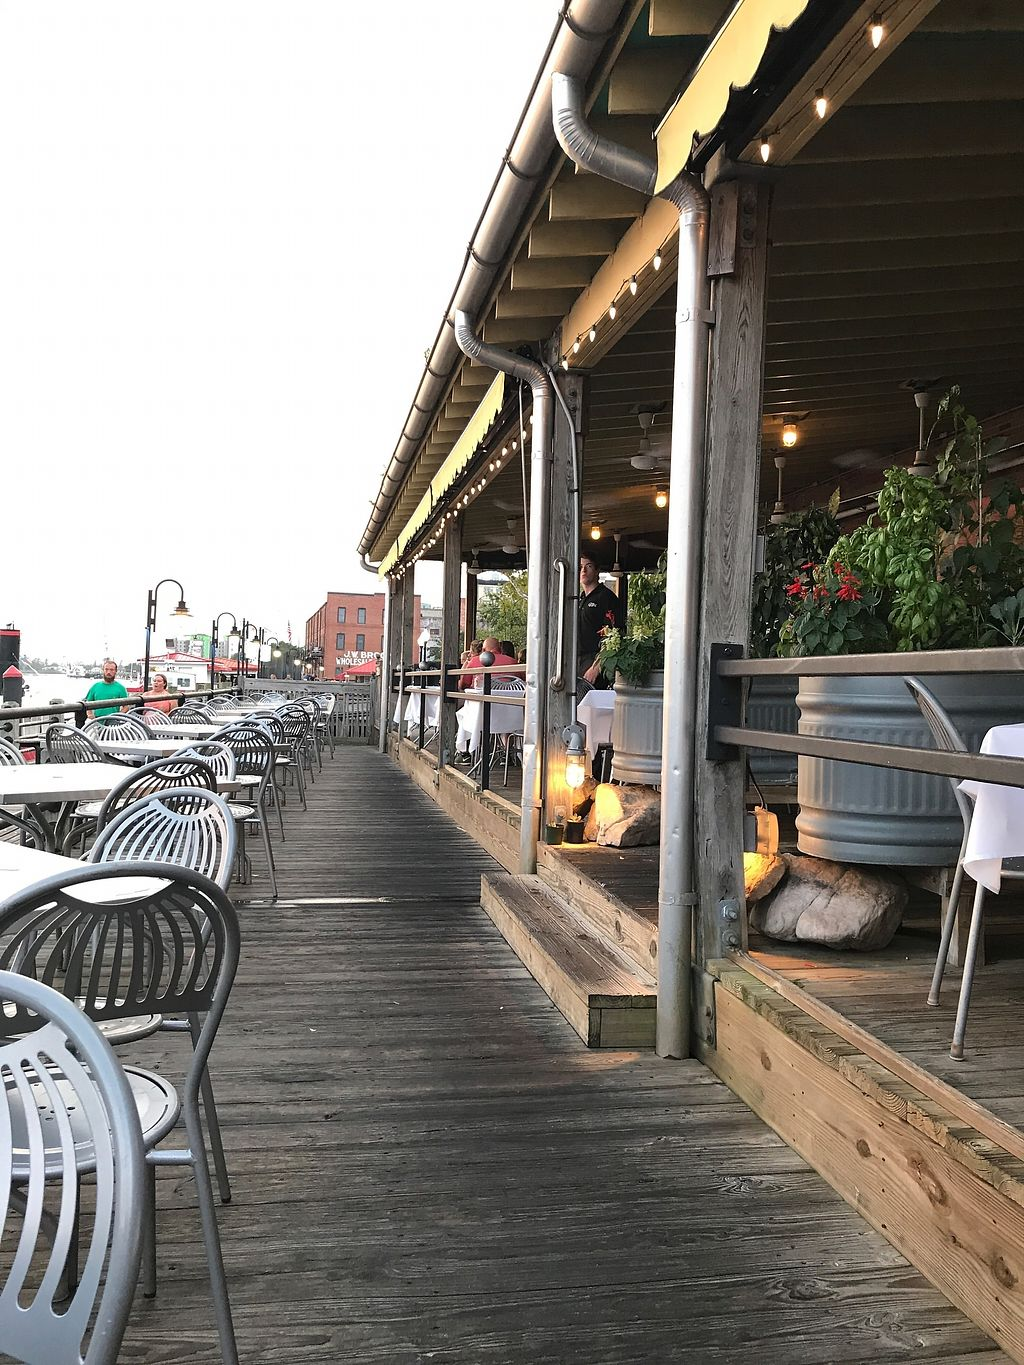 """Photo of The George on the Riverwalk  by <a href=""""/members/profile/angelcrowe"""">angelcrowe</a> <br/>The patios and riverfront atmosphere <br/> July 26, 2017  - <a href='/contact/abuse/image/97120/285182'>Report</a>"""